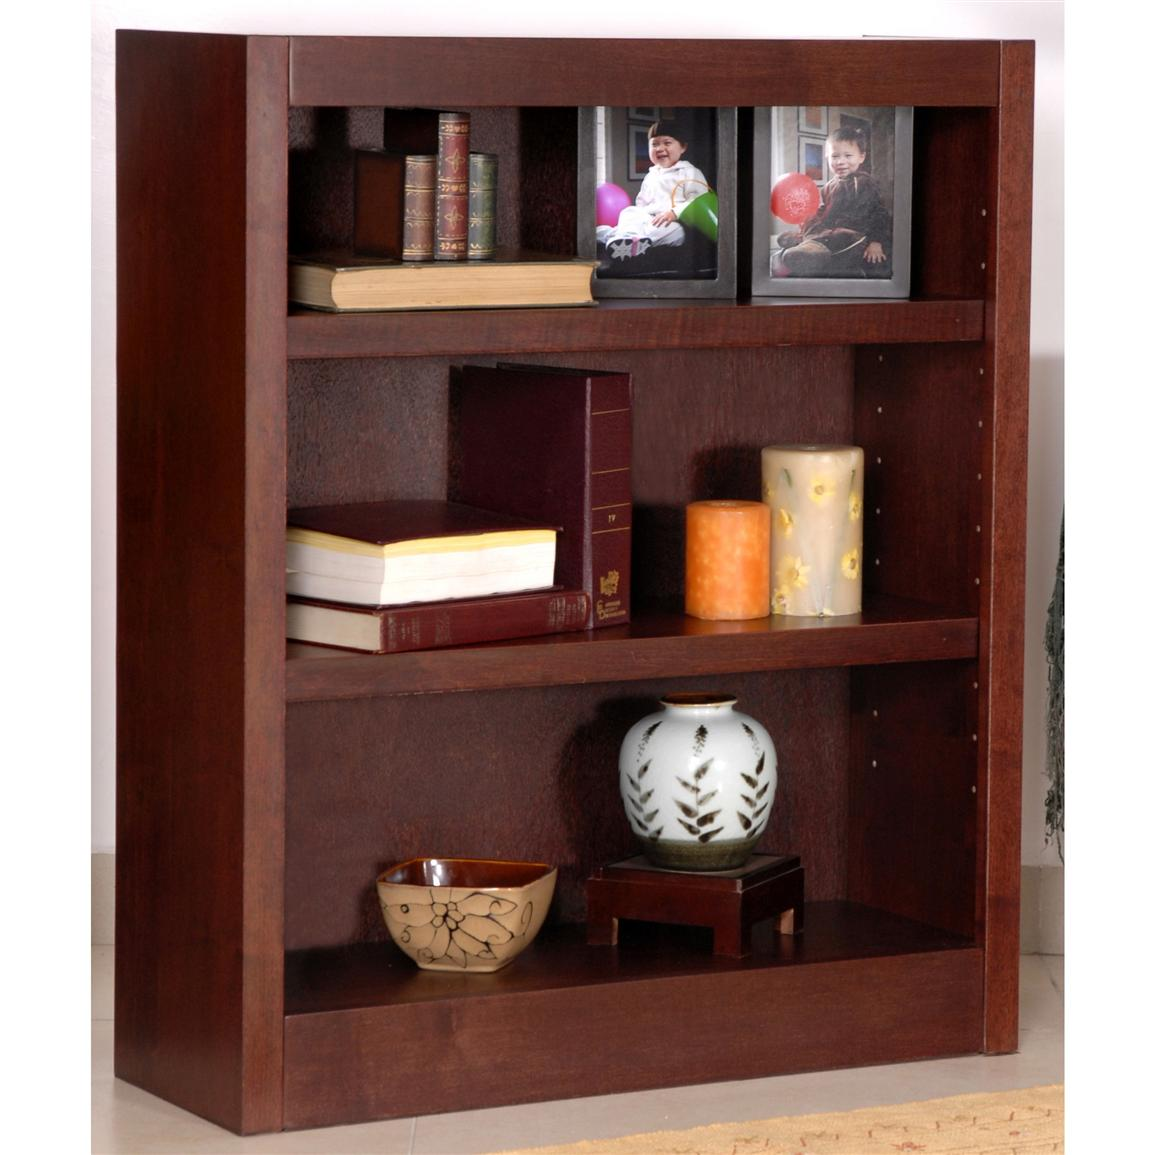 Concepts in Wood 3 - shelf Bookcase - 206539, Office at ...